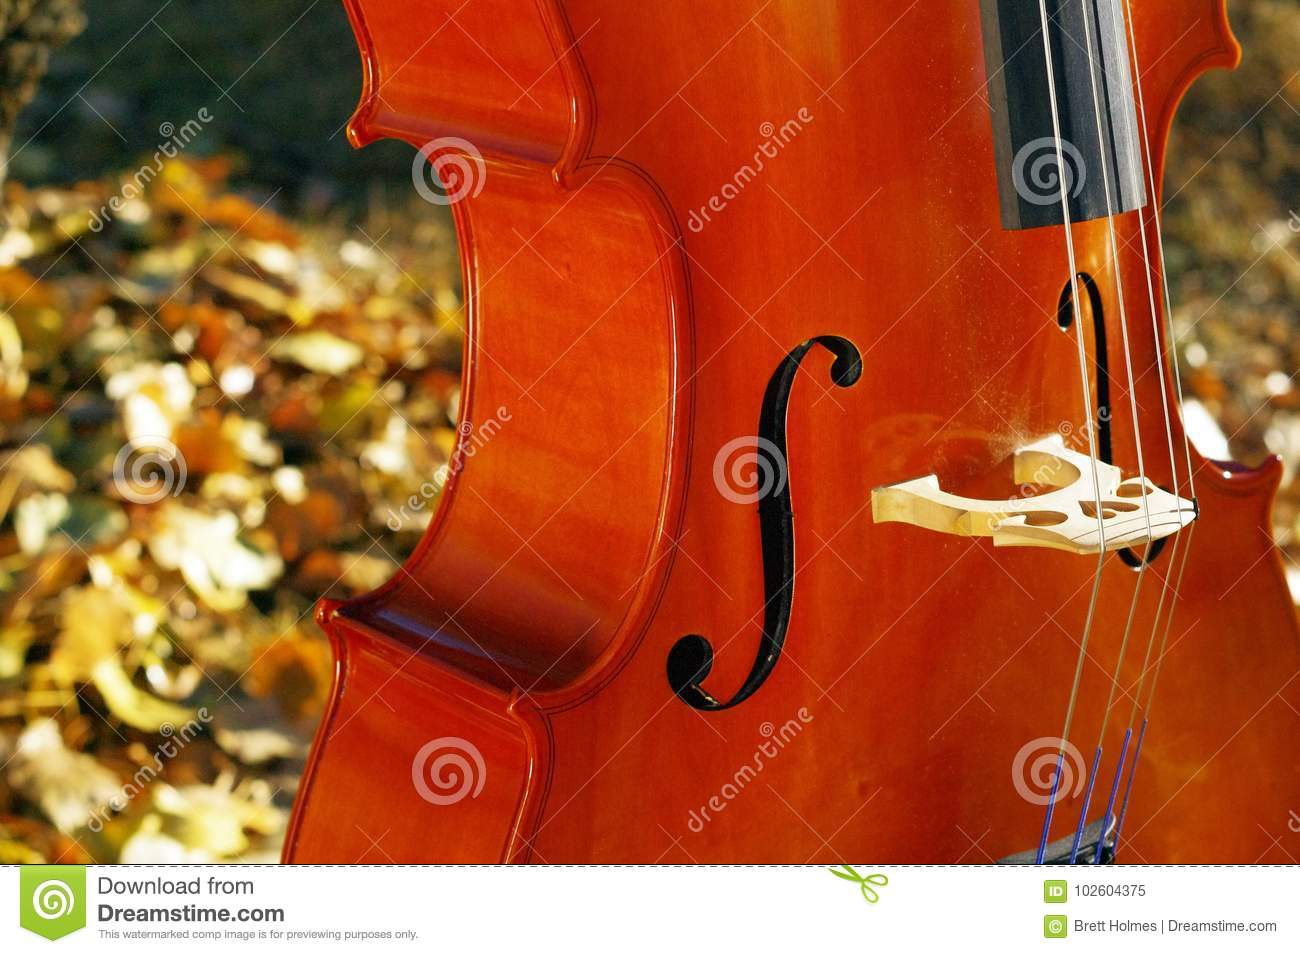 Cello outdoors closeup in the park in fall autumn day with colourful leaves